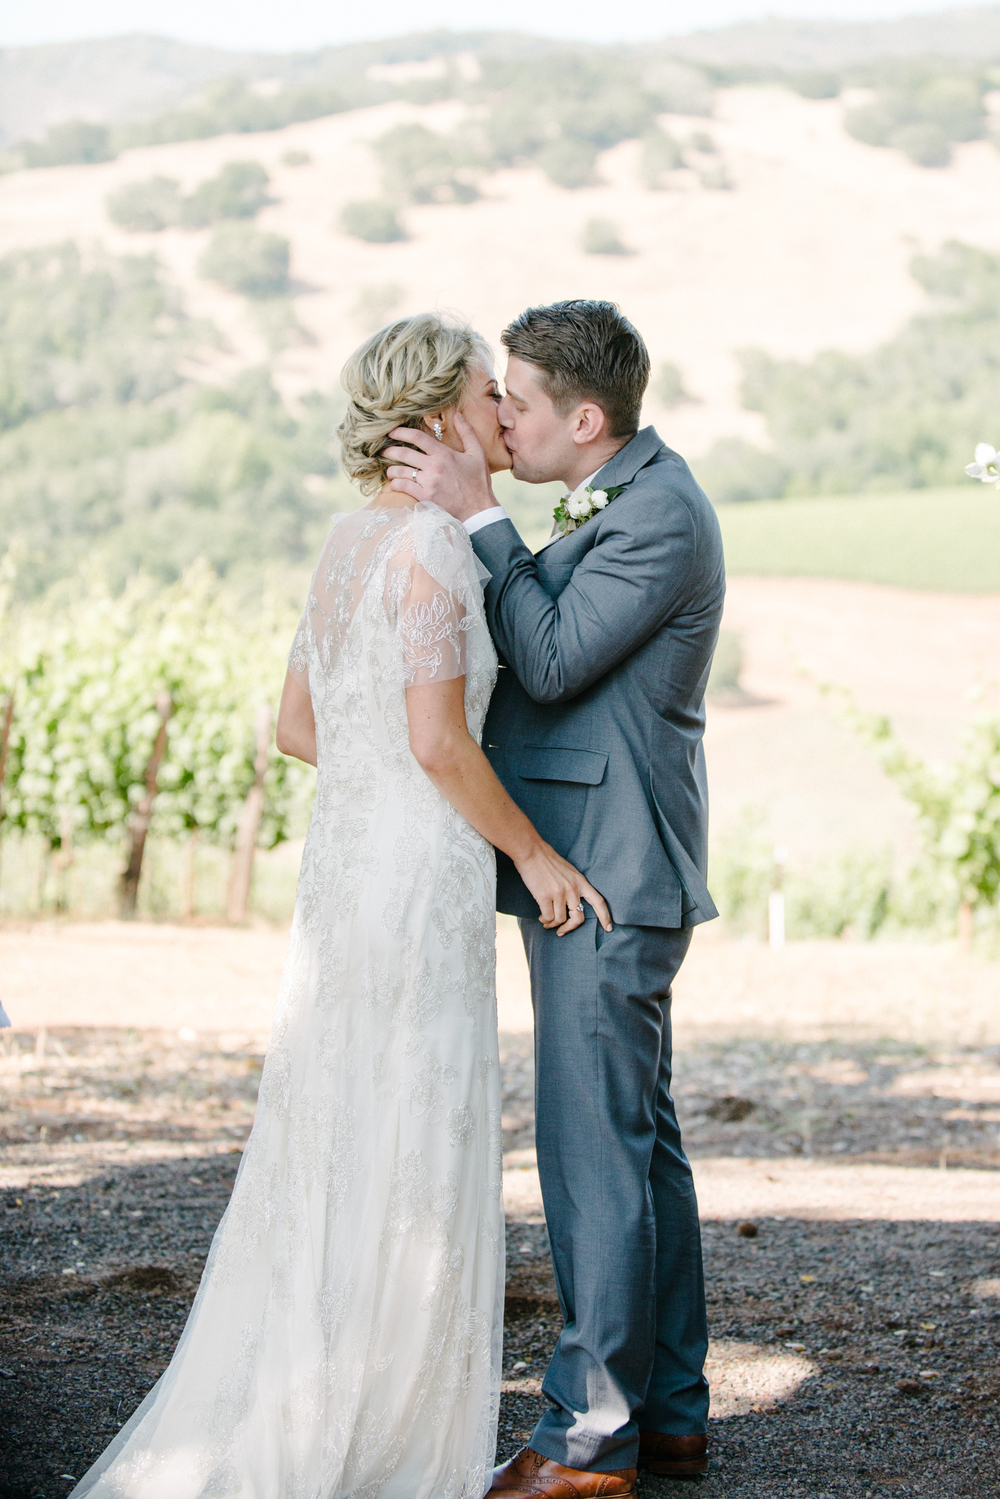 Sylvie-Gil-film-destination-photography-Kunde-winery-Napa-Valley-elegant-shabby-chic-bride-groom-kiss-ceremony